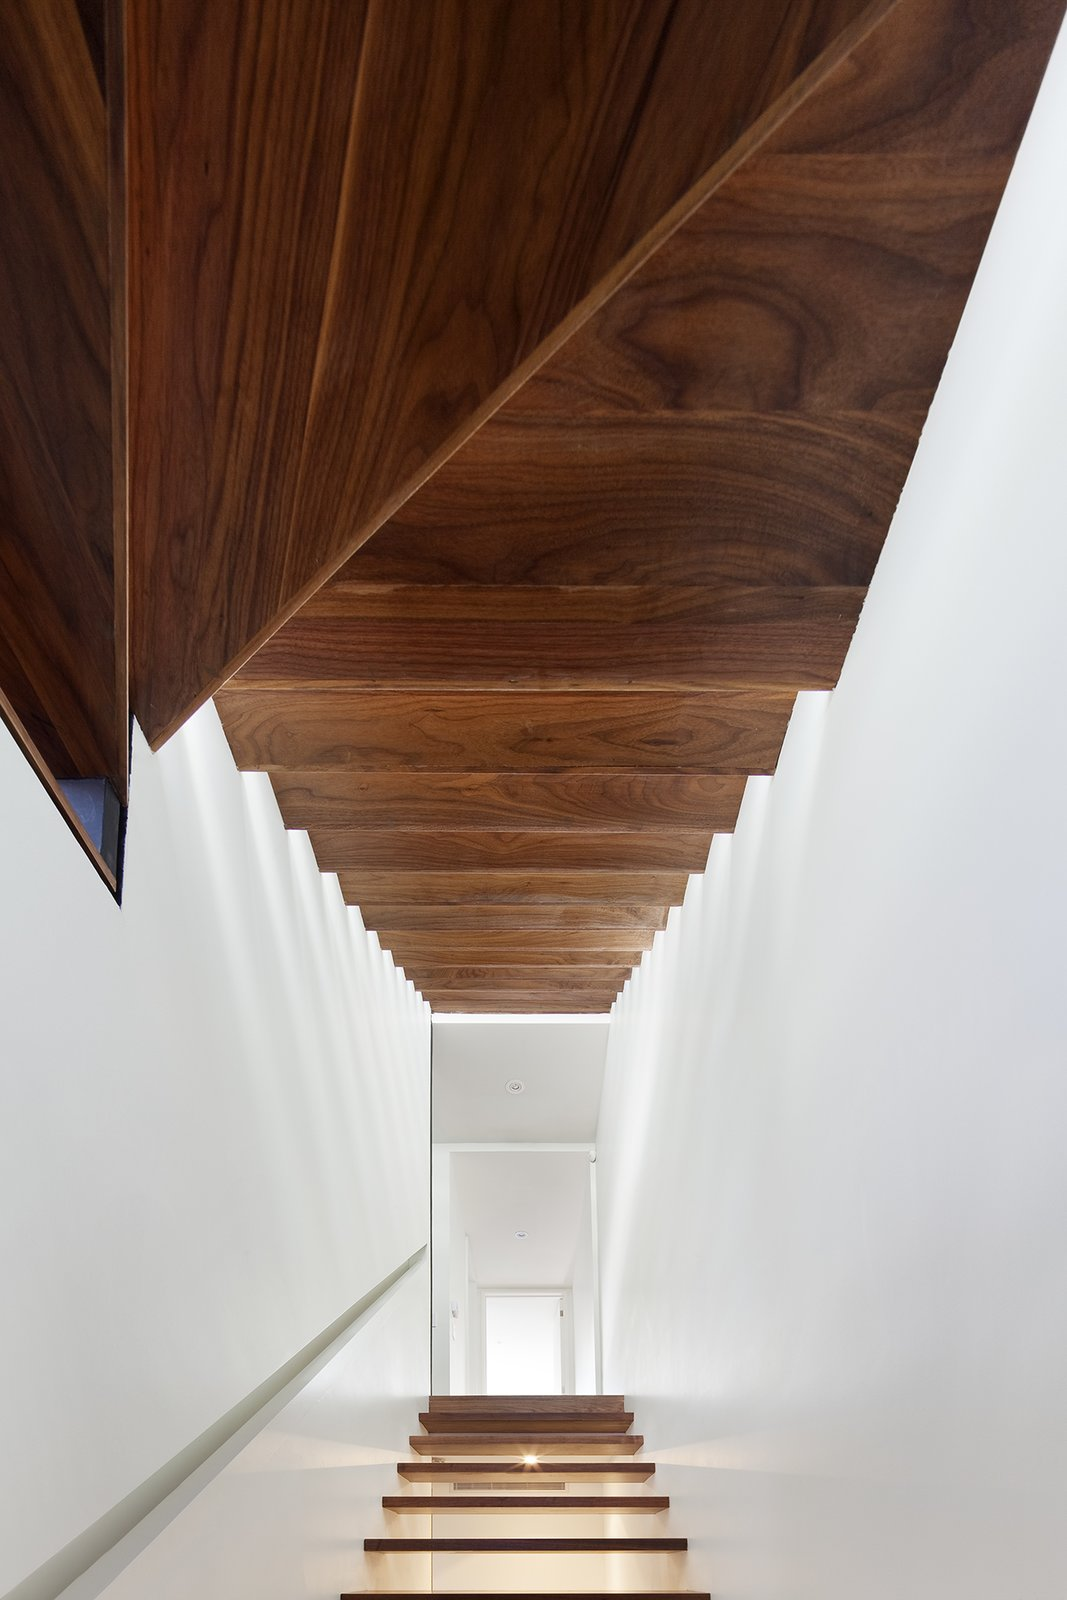 """Staircase and Wood Tread """"The original stairs were not lined up vertically, which took up much of the internal space,"""" Dubbeldam explains. The architect replaced them with black walnut wood risers that seem to float from the basement to the third floor, allowing light to spill into the house's once-dark interior.  190+ Best Modern Staircase Ideas"""